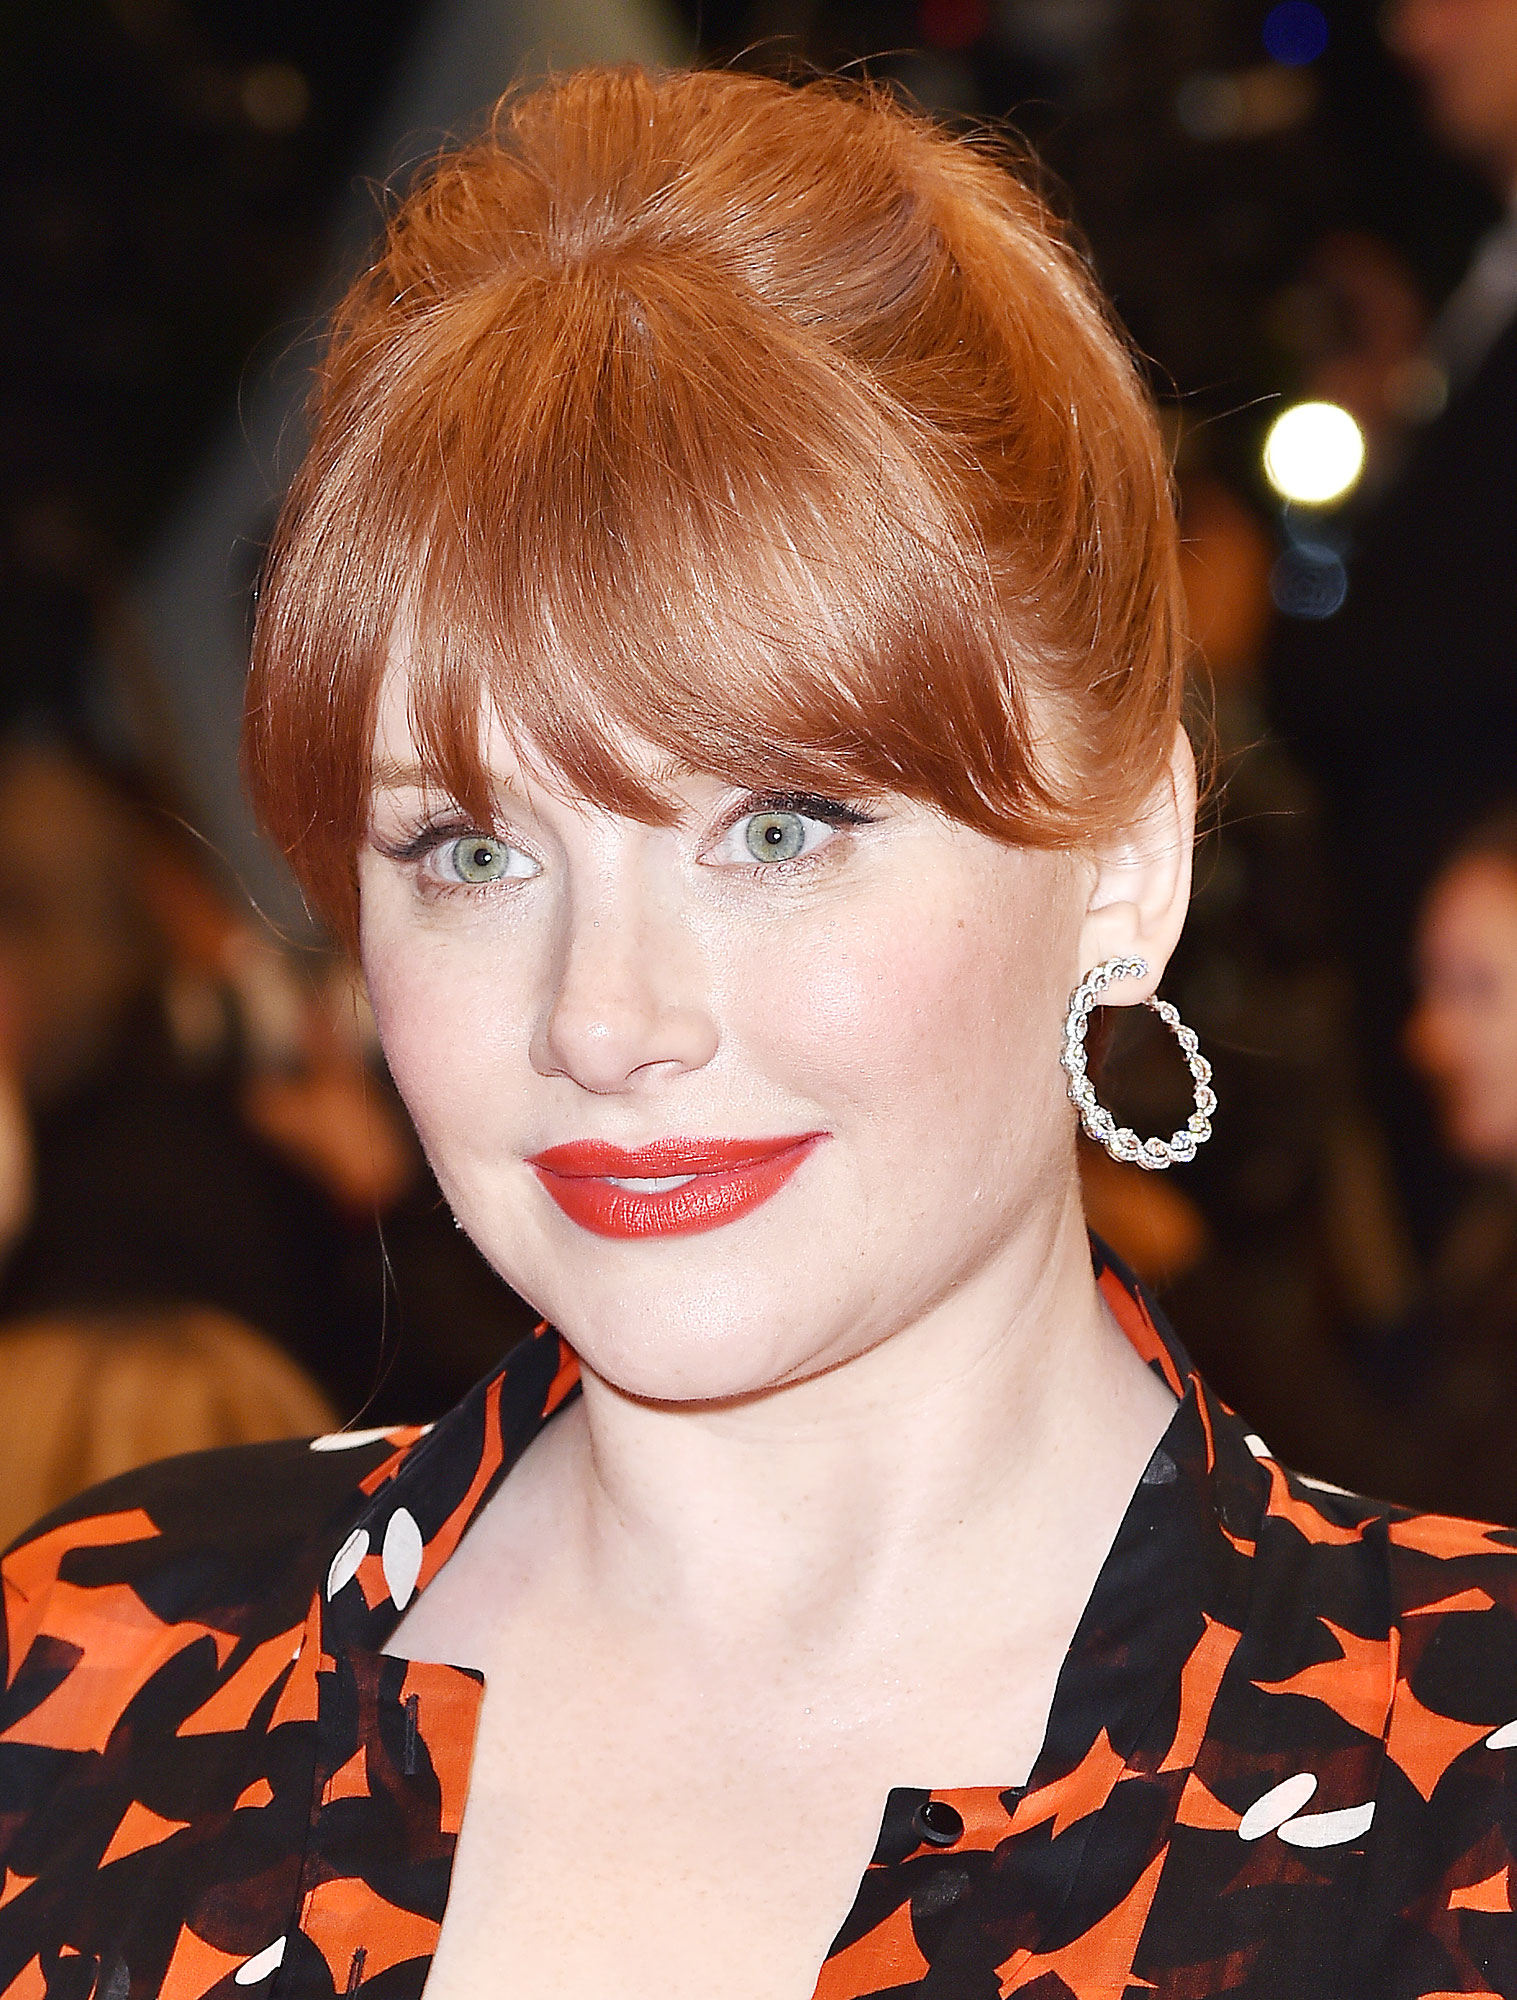 Bryce Dallas Howard Cannes Film Festival Real Real Consignment Red Black Dress - Playing off the boldness of the dress, Yoshimoto Bua warmed up Howard's porcelain complexion with a rosy blush, defined her eyes with a graphic black cat eye and made her pout pop with a cherry red shade.